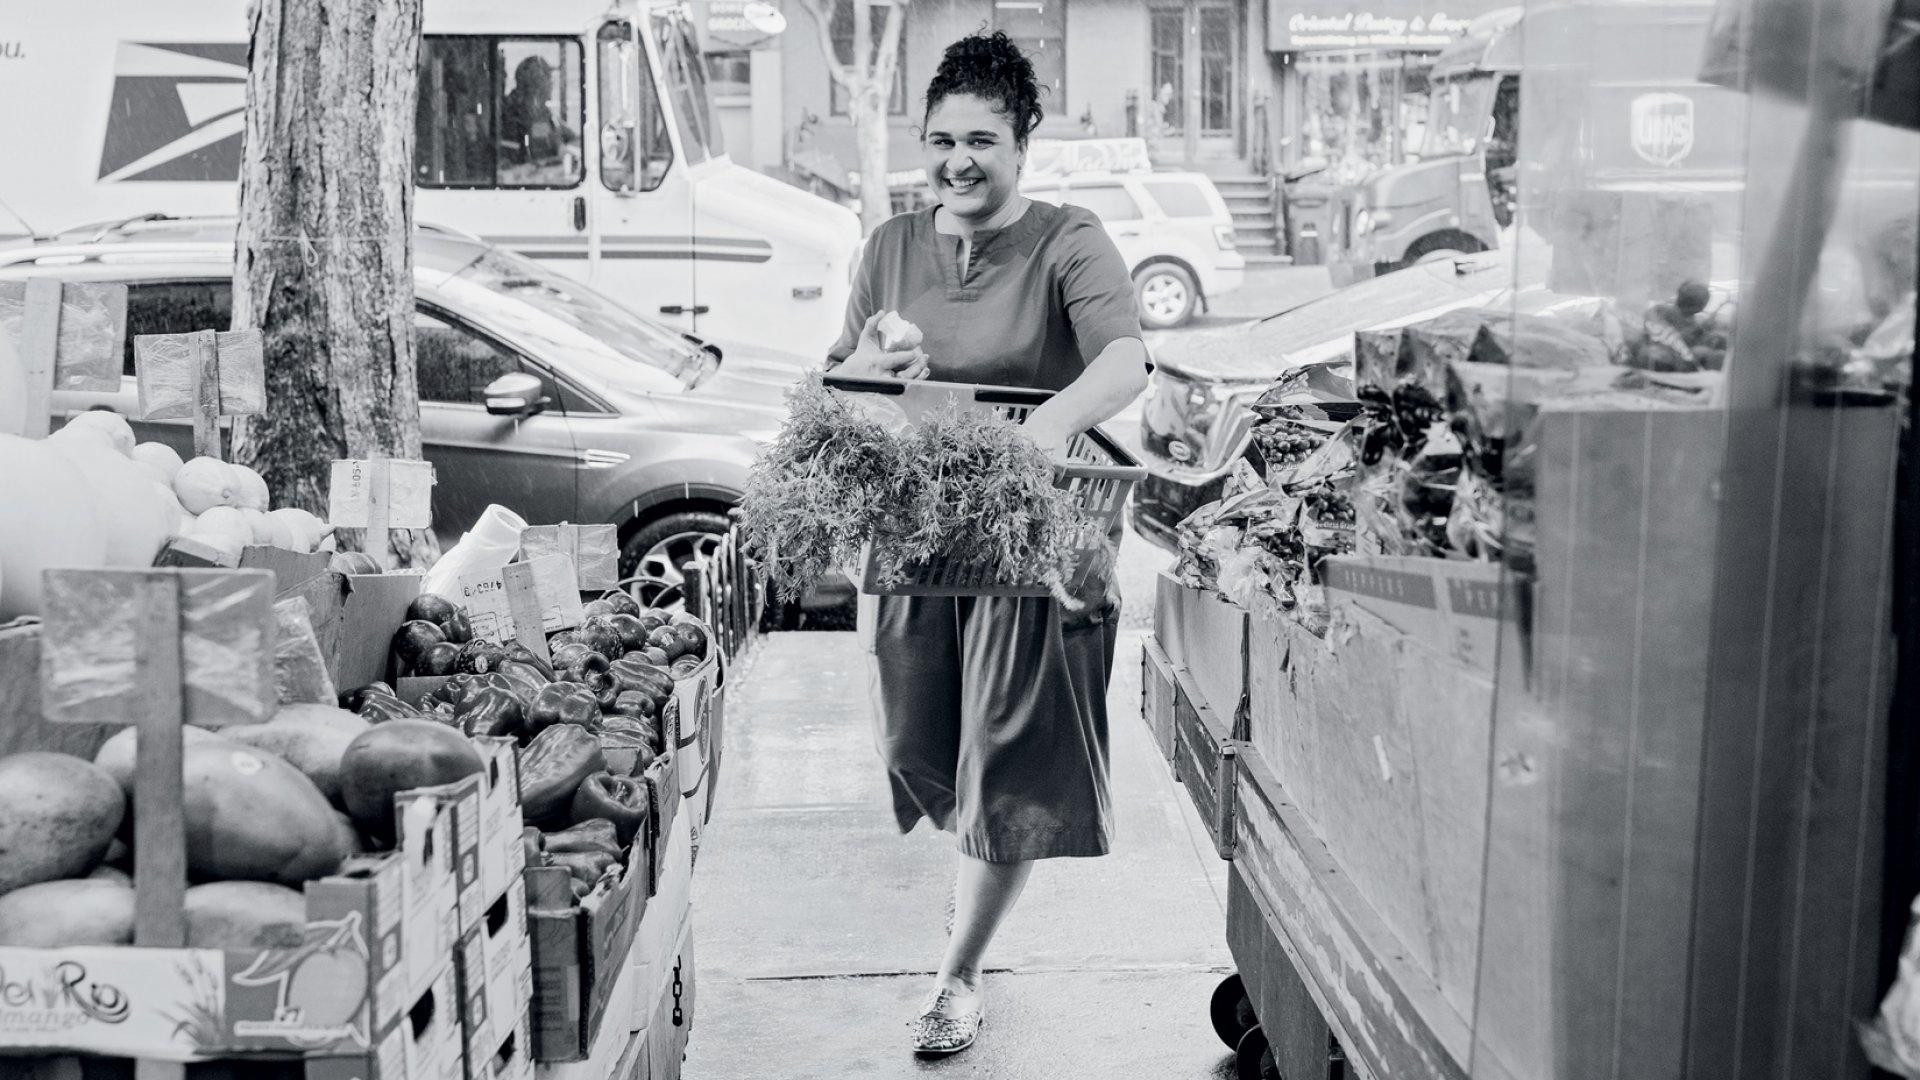 Samin Nosrat, finding joy (and produce) while shopping in Brooklyn.